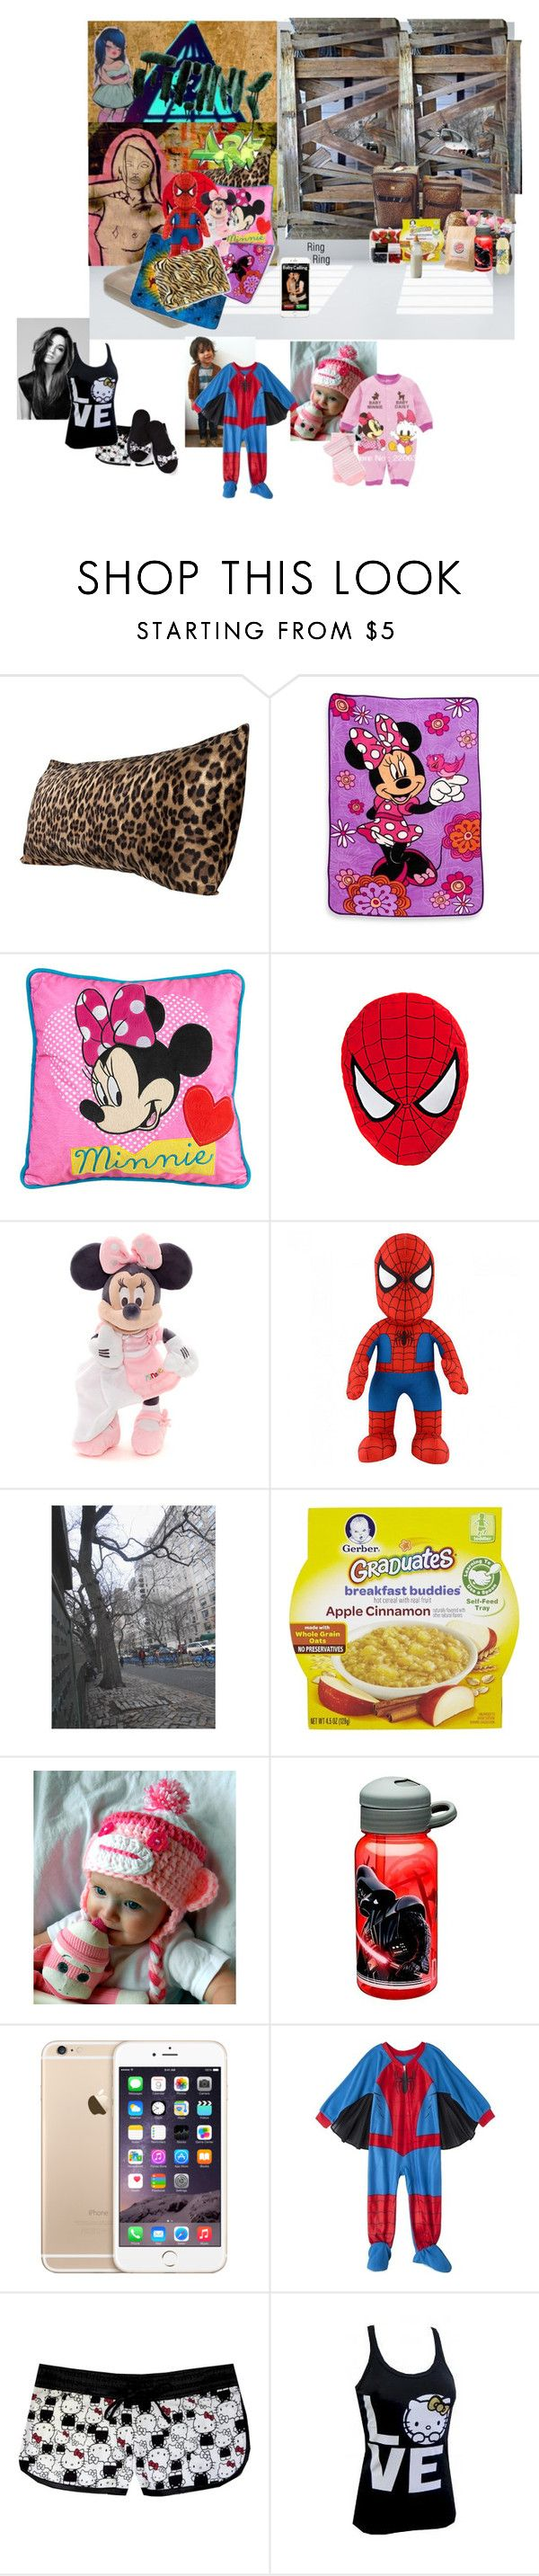 """""""Sleeping in an abandoned building"""" by wonderland-junkie ❤ liked on Polyvore featuring Disney, Bleacher Creatures, POLICE, Gerber, Bebe, Justin Bieber, Hello Kitty and Victoria's Secret"""